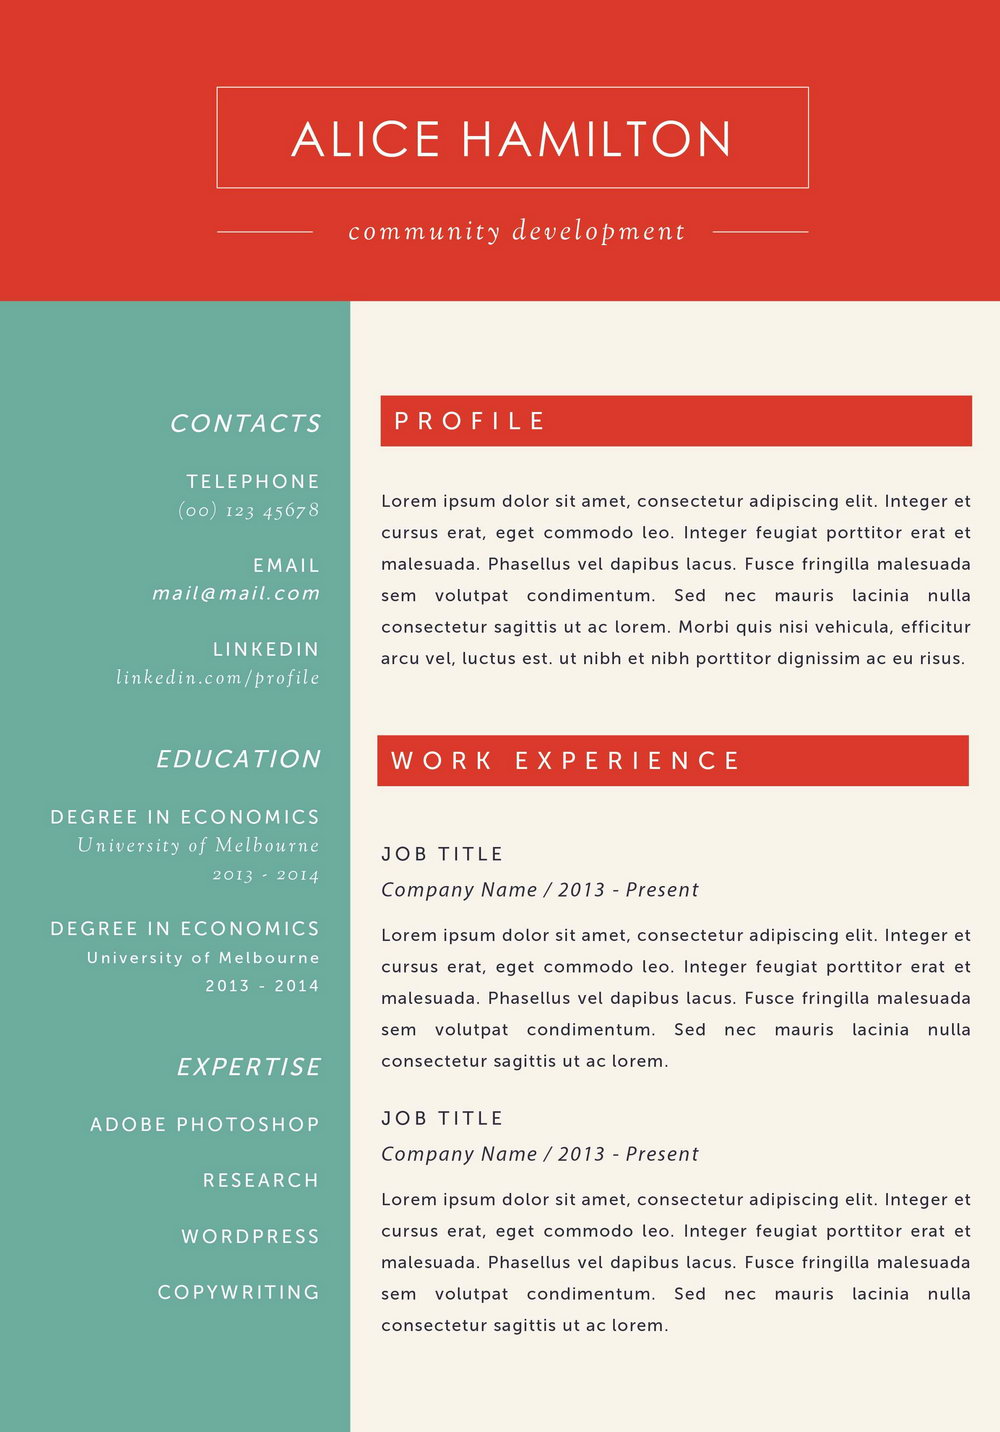 Resume Templates For Mac Textedit